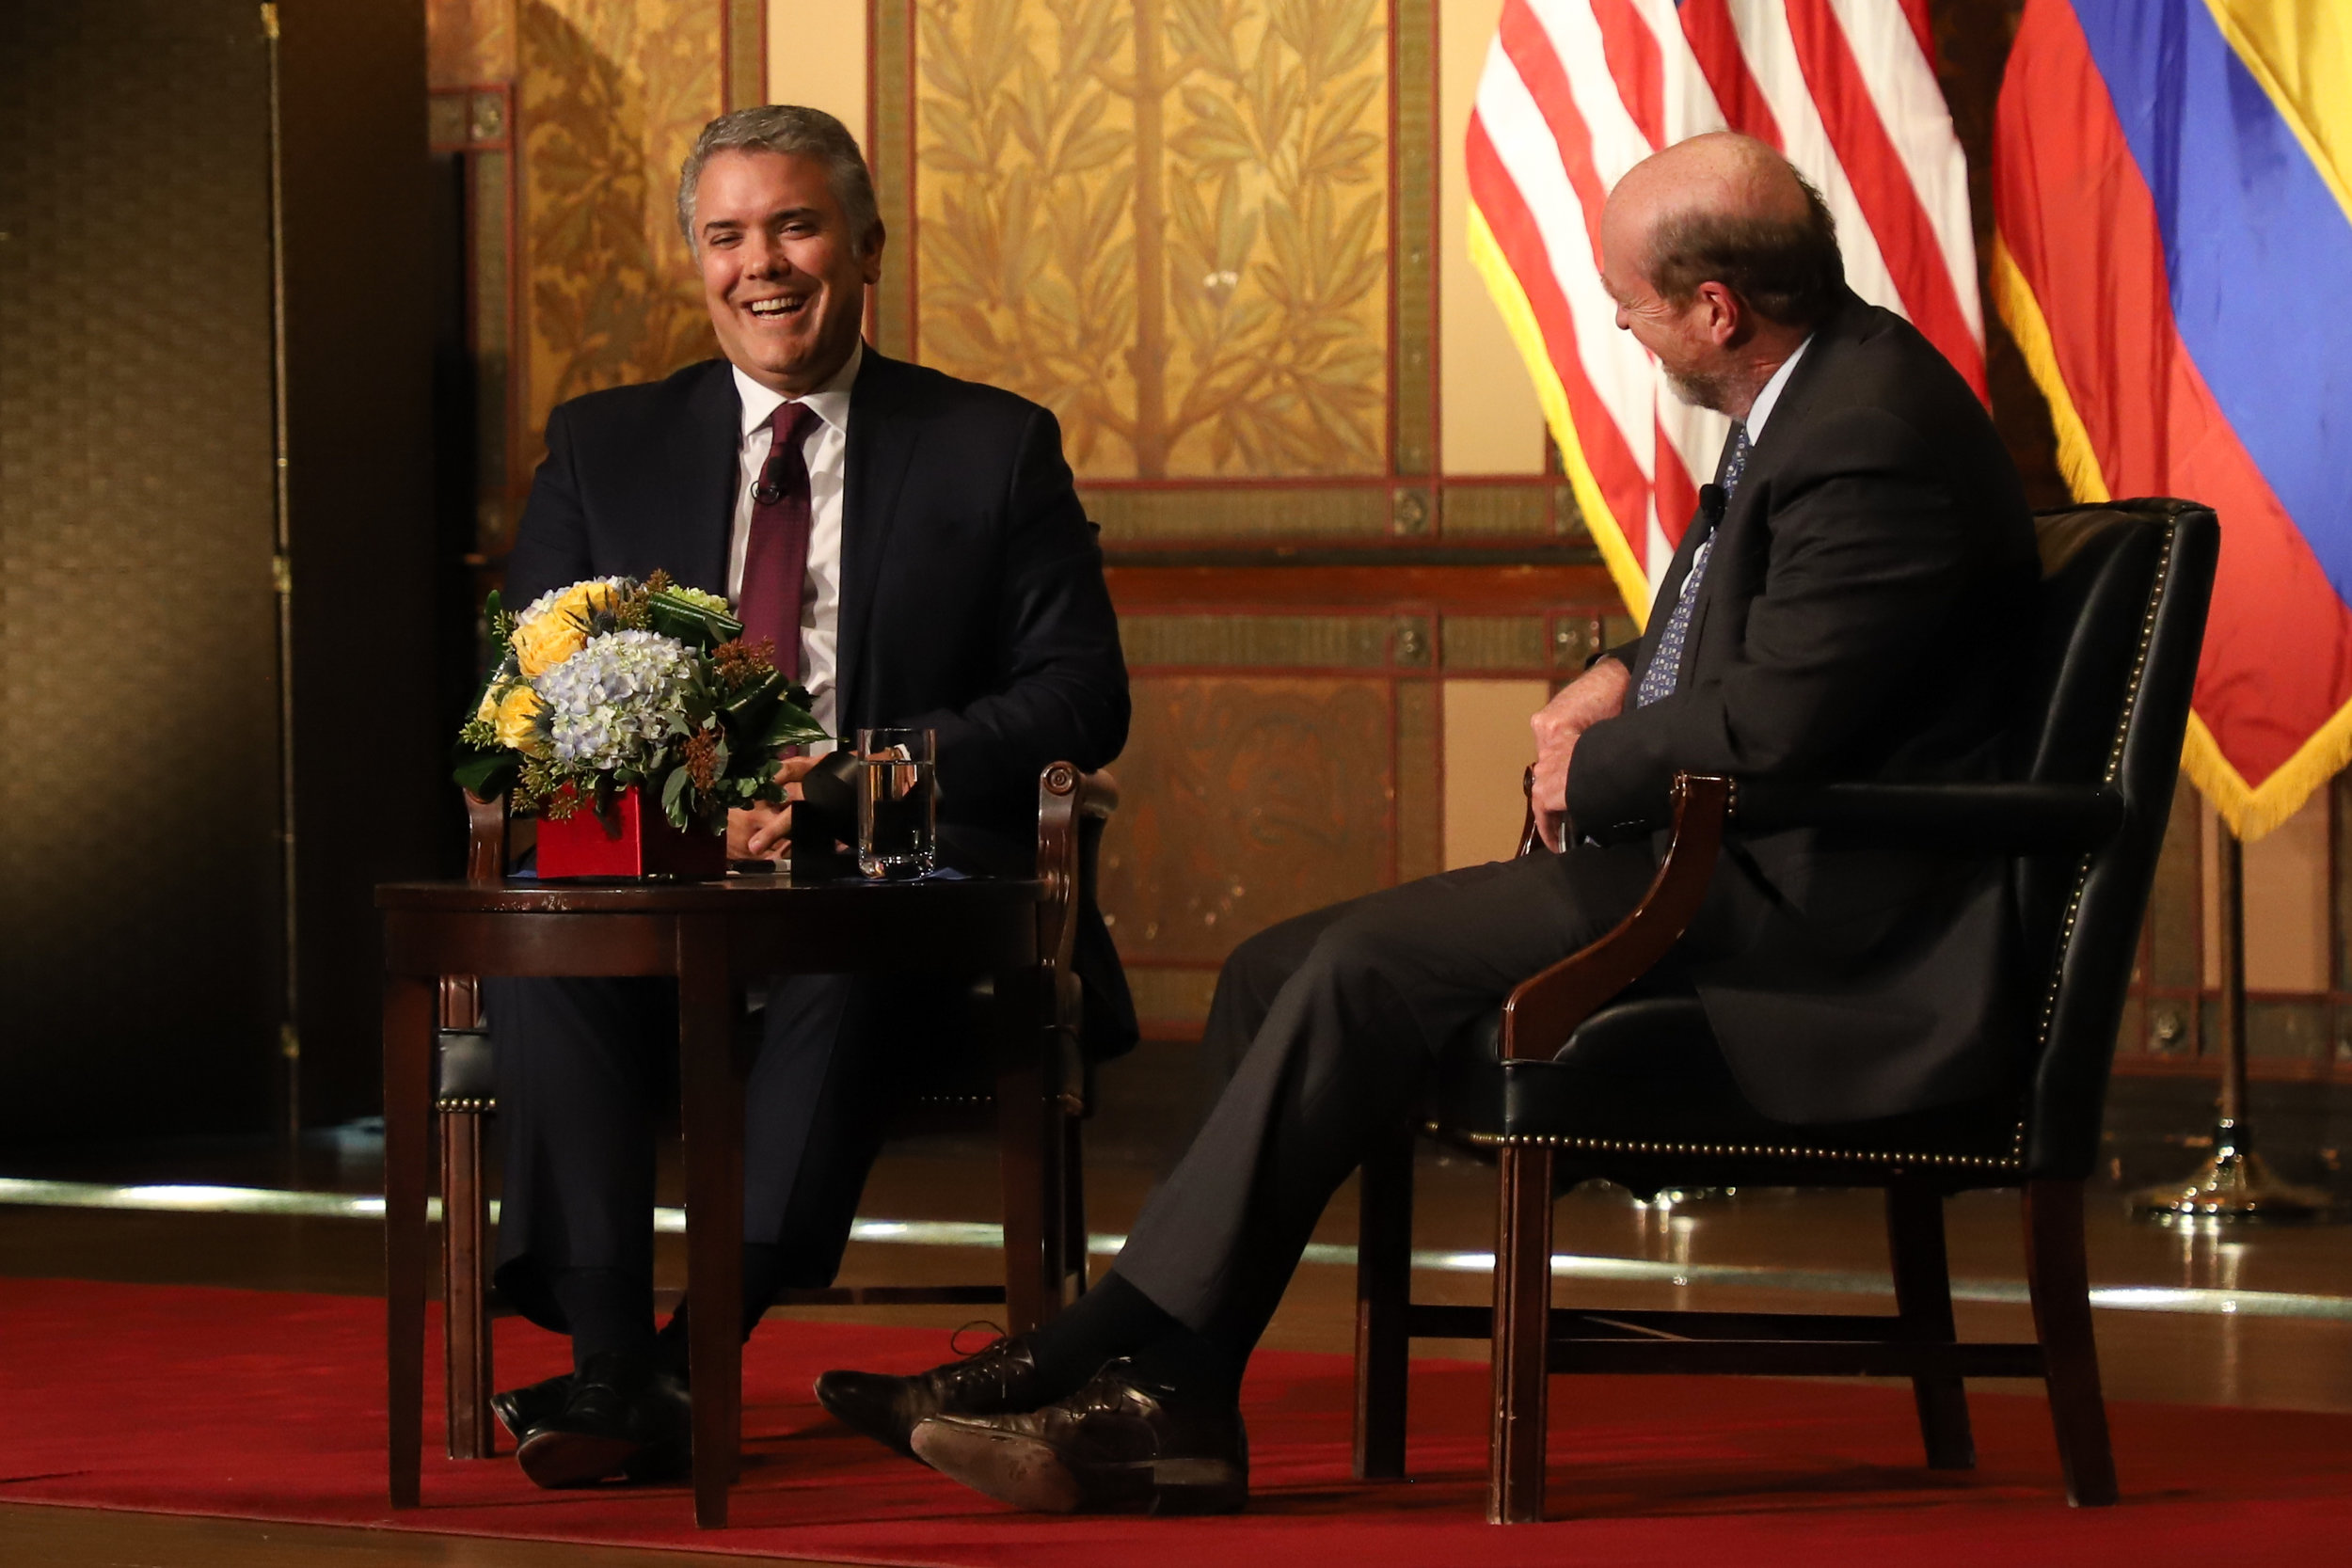 Colombian President Iván Duque Márquez (GRD '07) address his Latin American policy agenda in an address in Gaston Hall on February 14. (Bryce Couch, SFS '19)